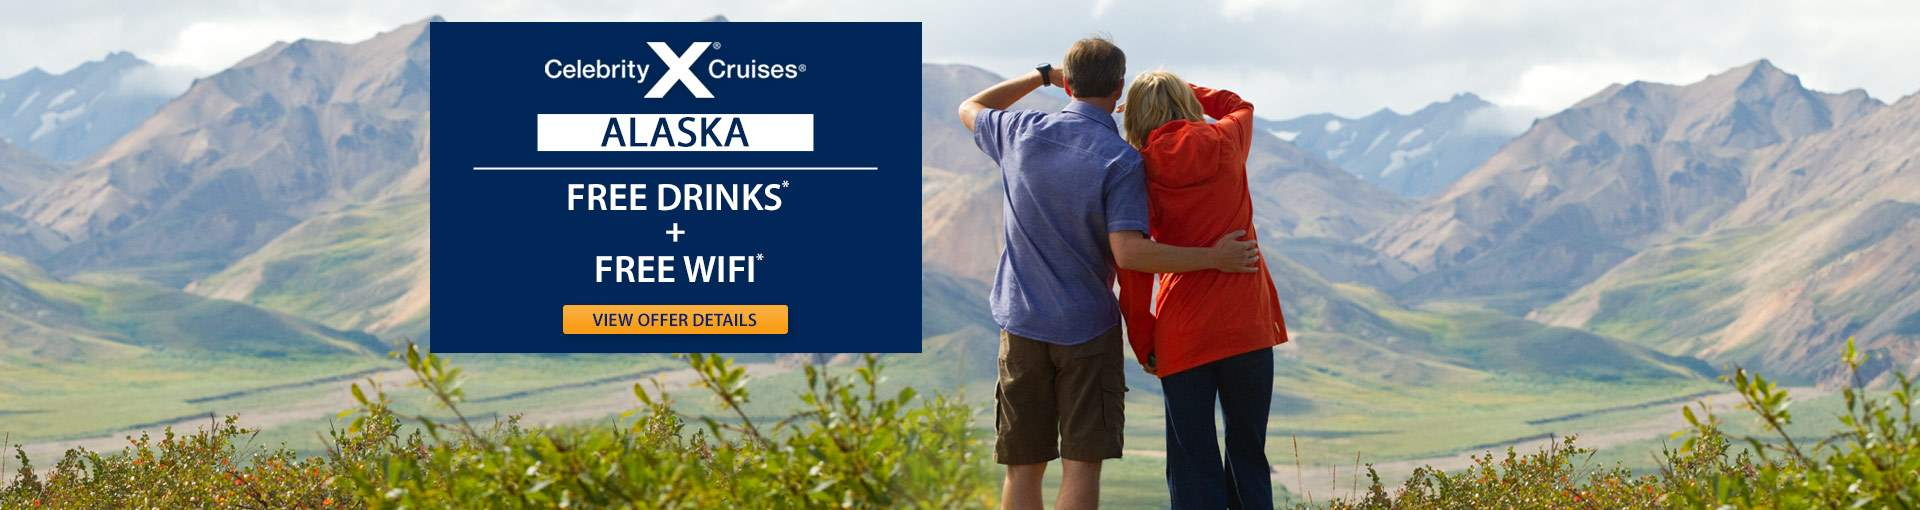 Celebrity Cruises to Alaska with Free Perks